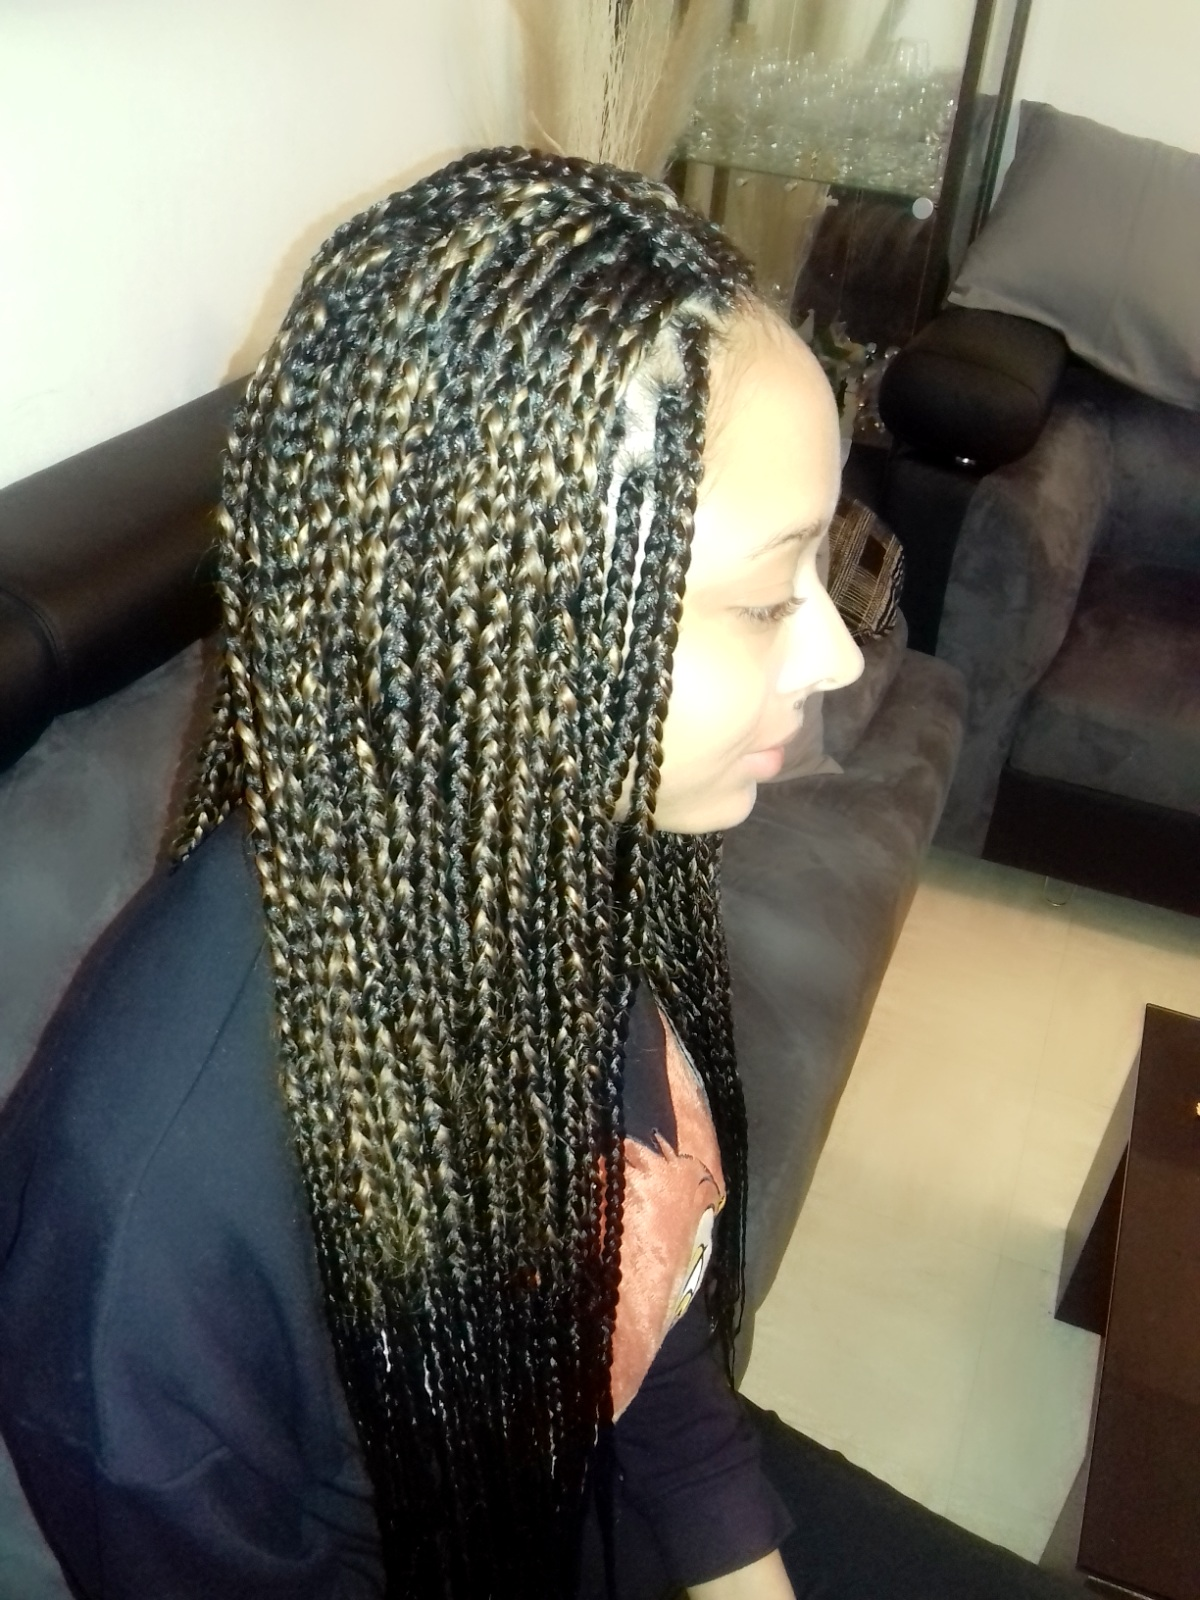 salon de coiffure afro tresse tresses box braids crochet braids vanilles tissages paris 75 77 78 91 92 93 94 95 KAWBBIOM